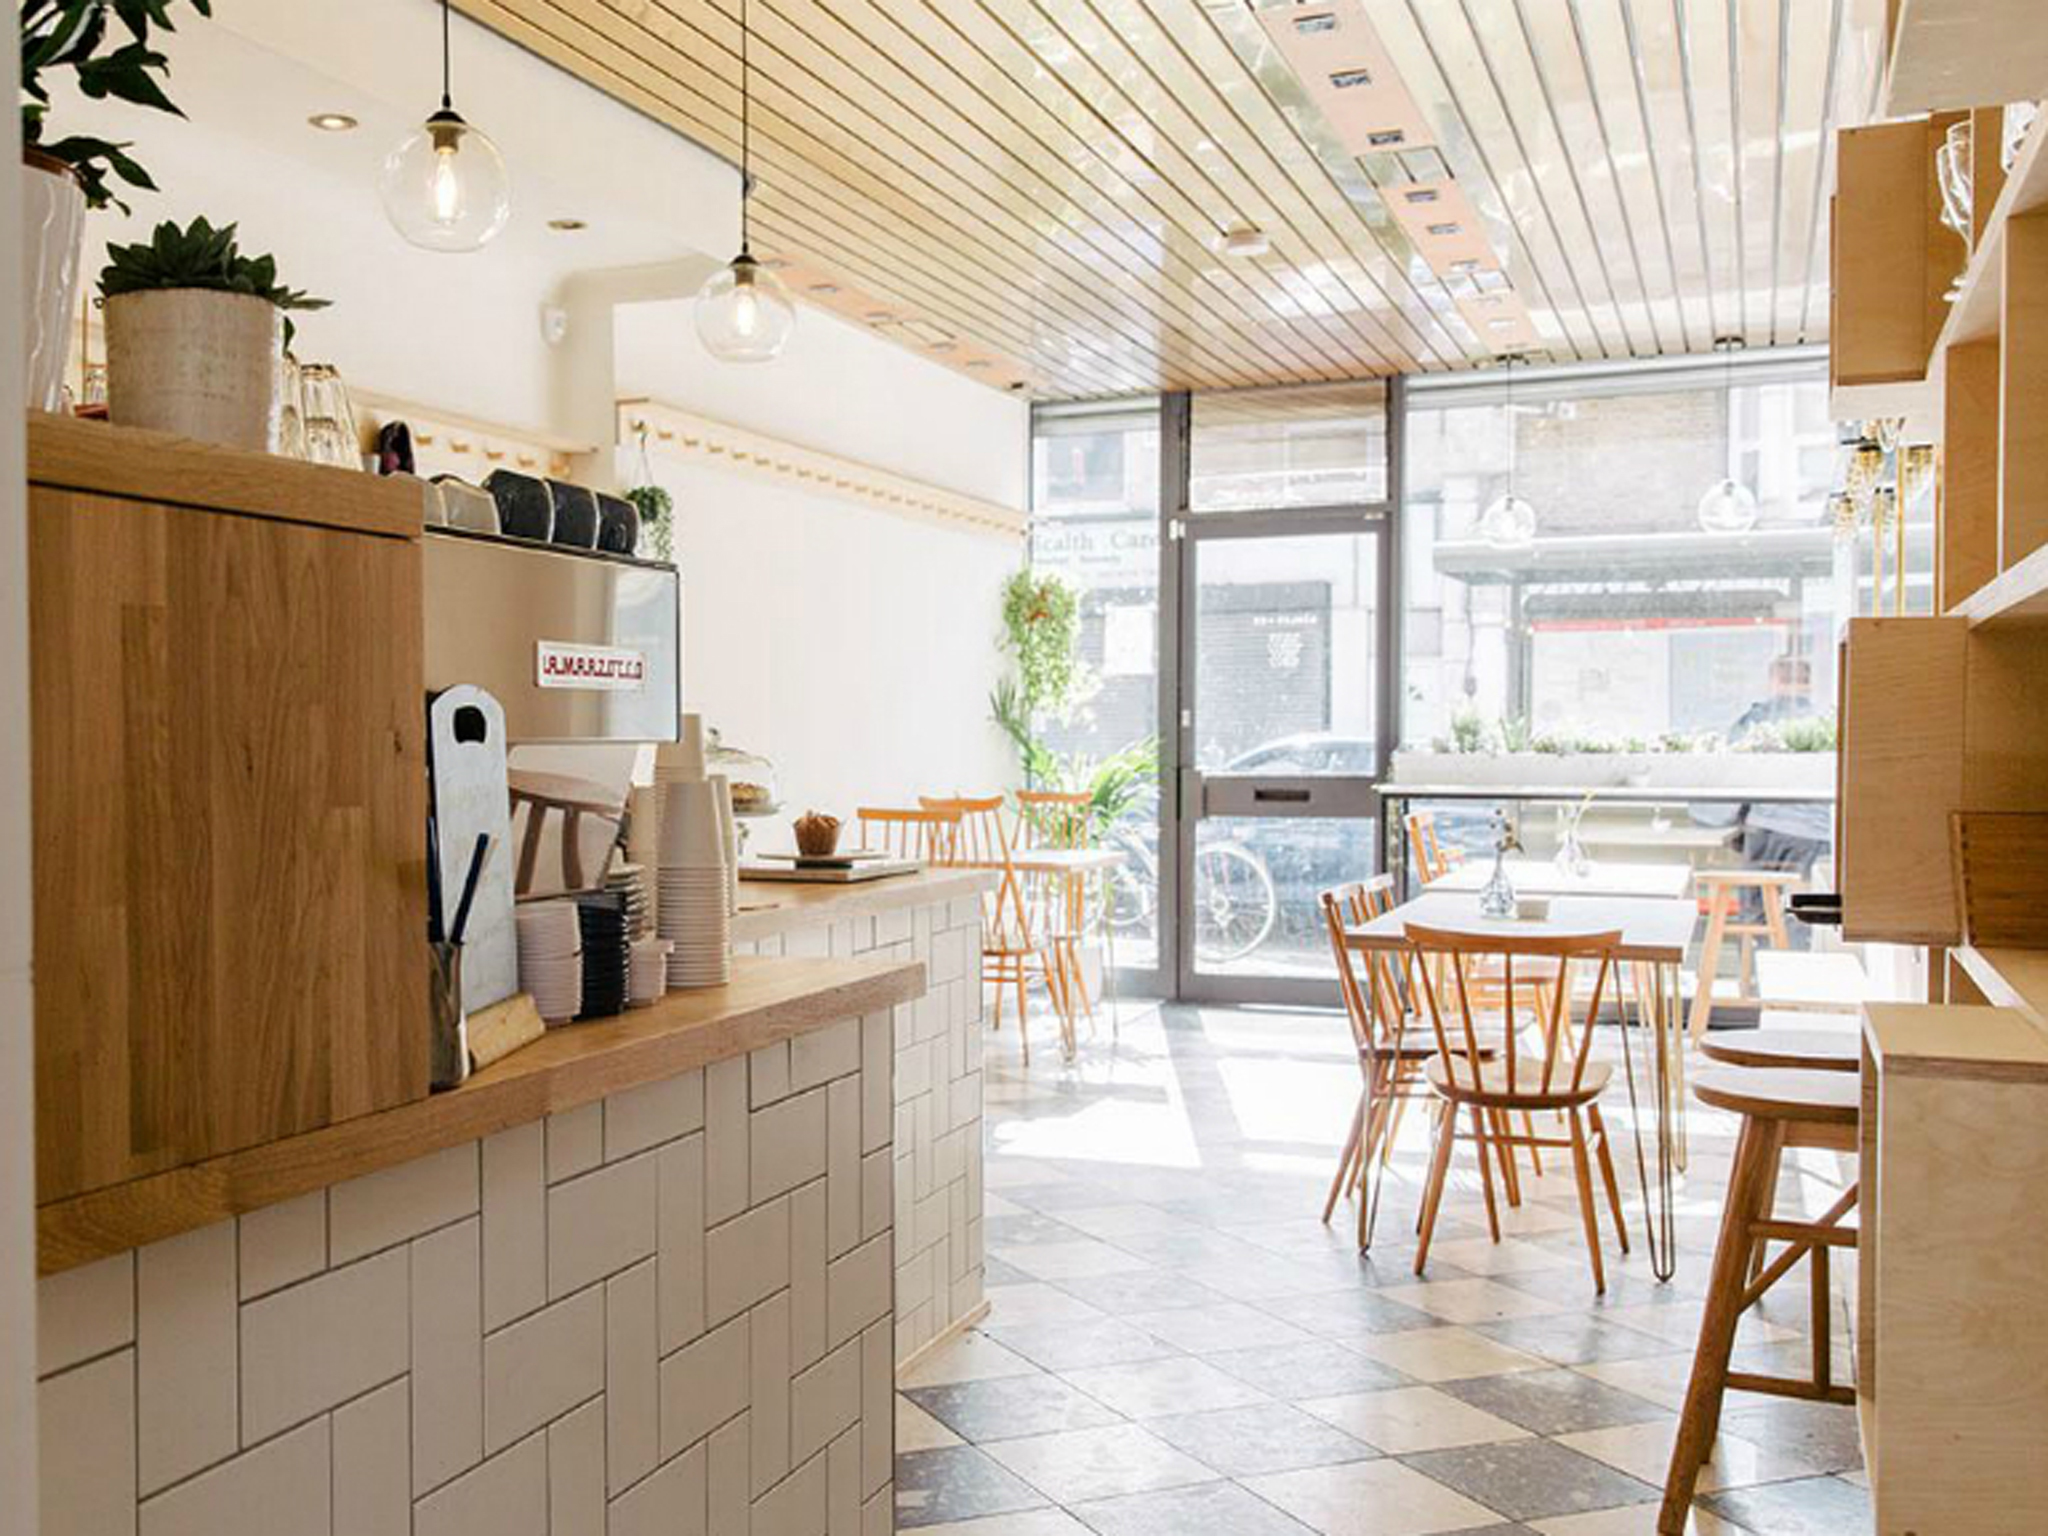 66 Killer Cafés | London\'s Best Cafés and Coffee Shops